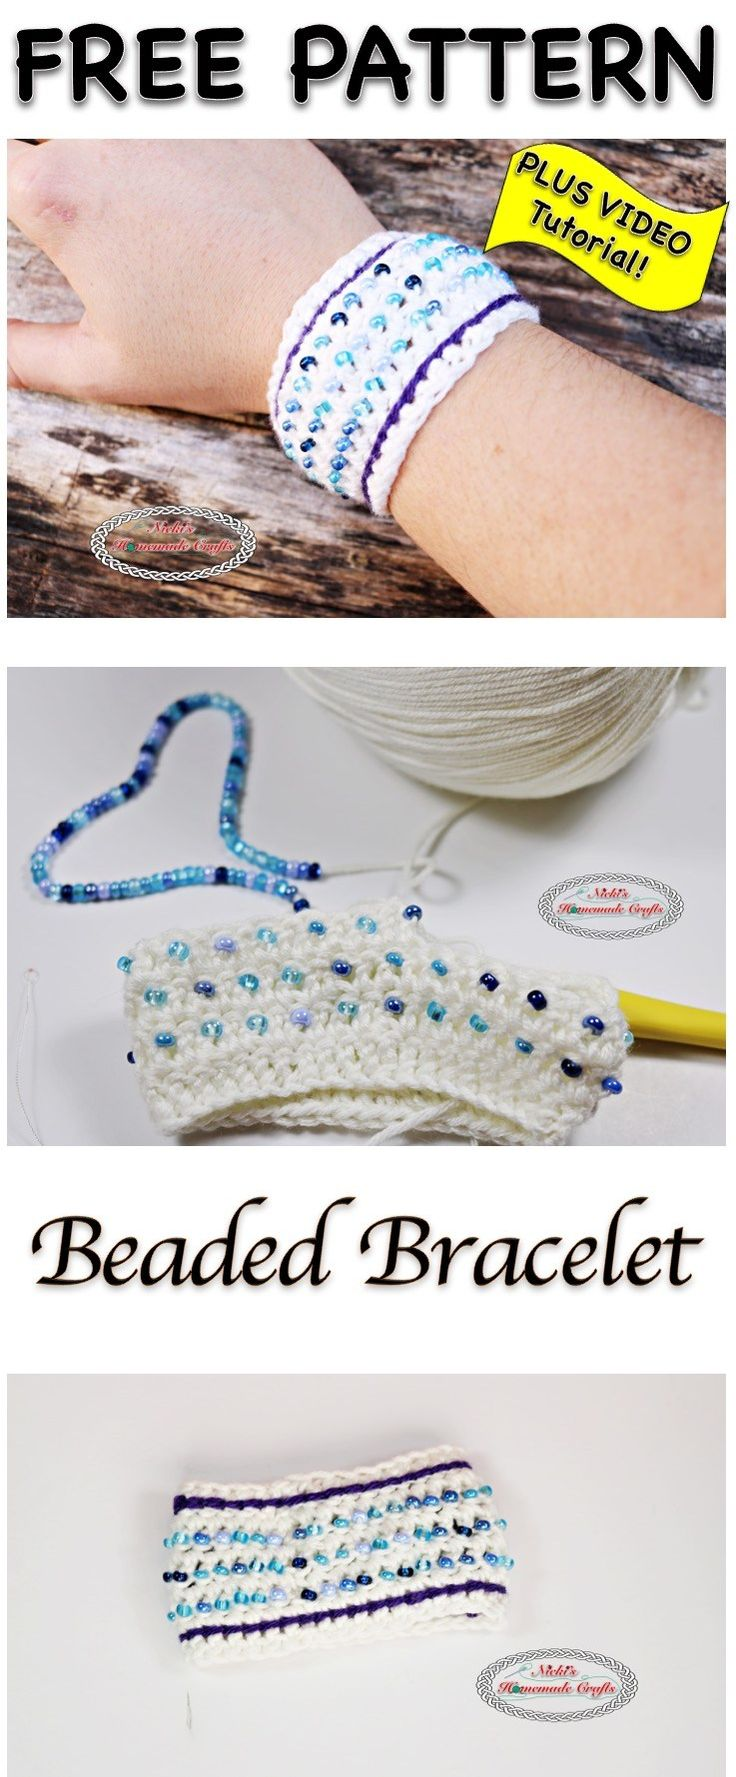 Beaded Bracelet - Free Crochet Pattern